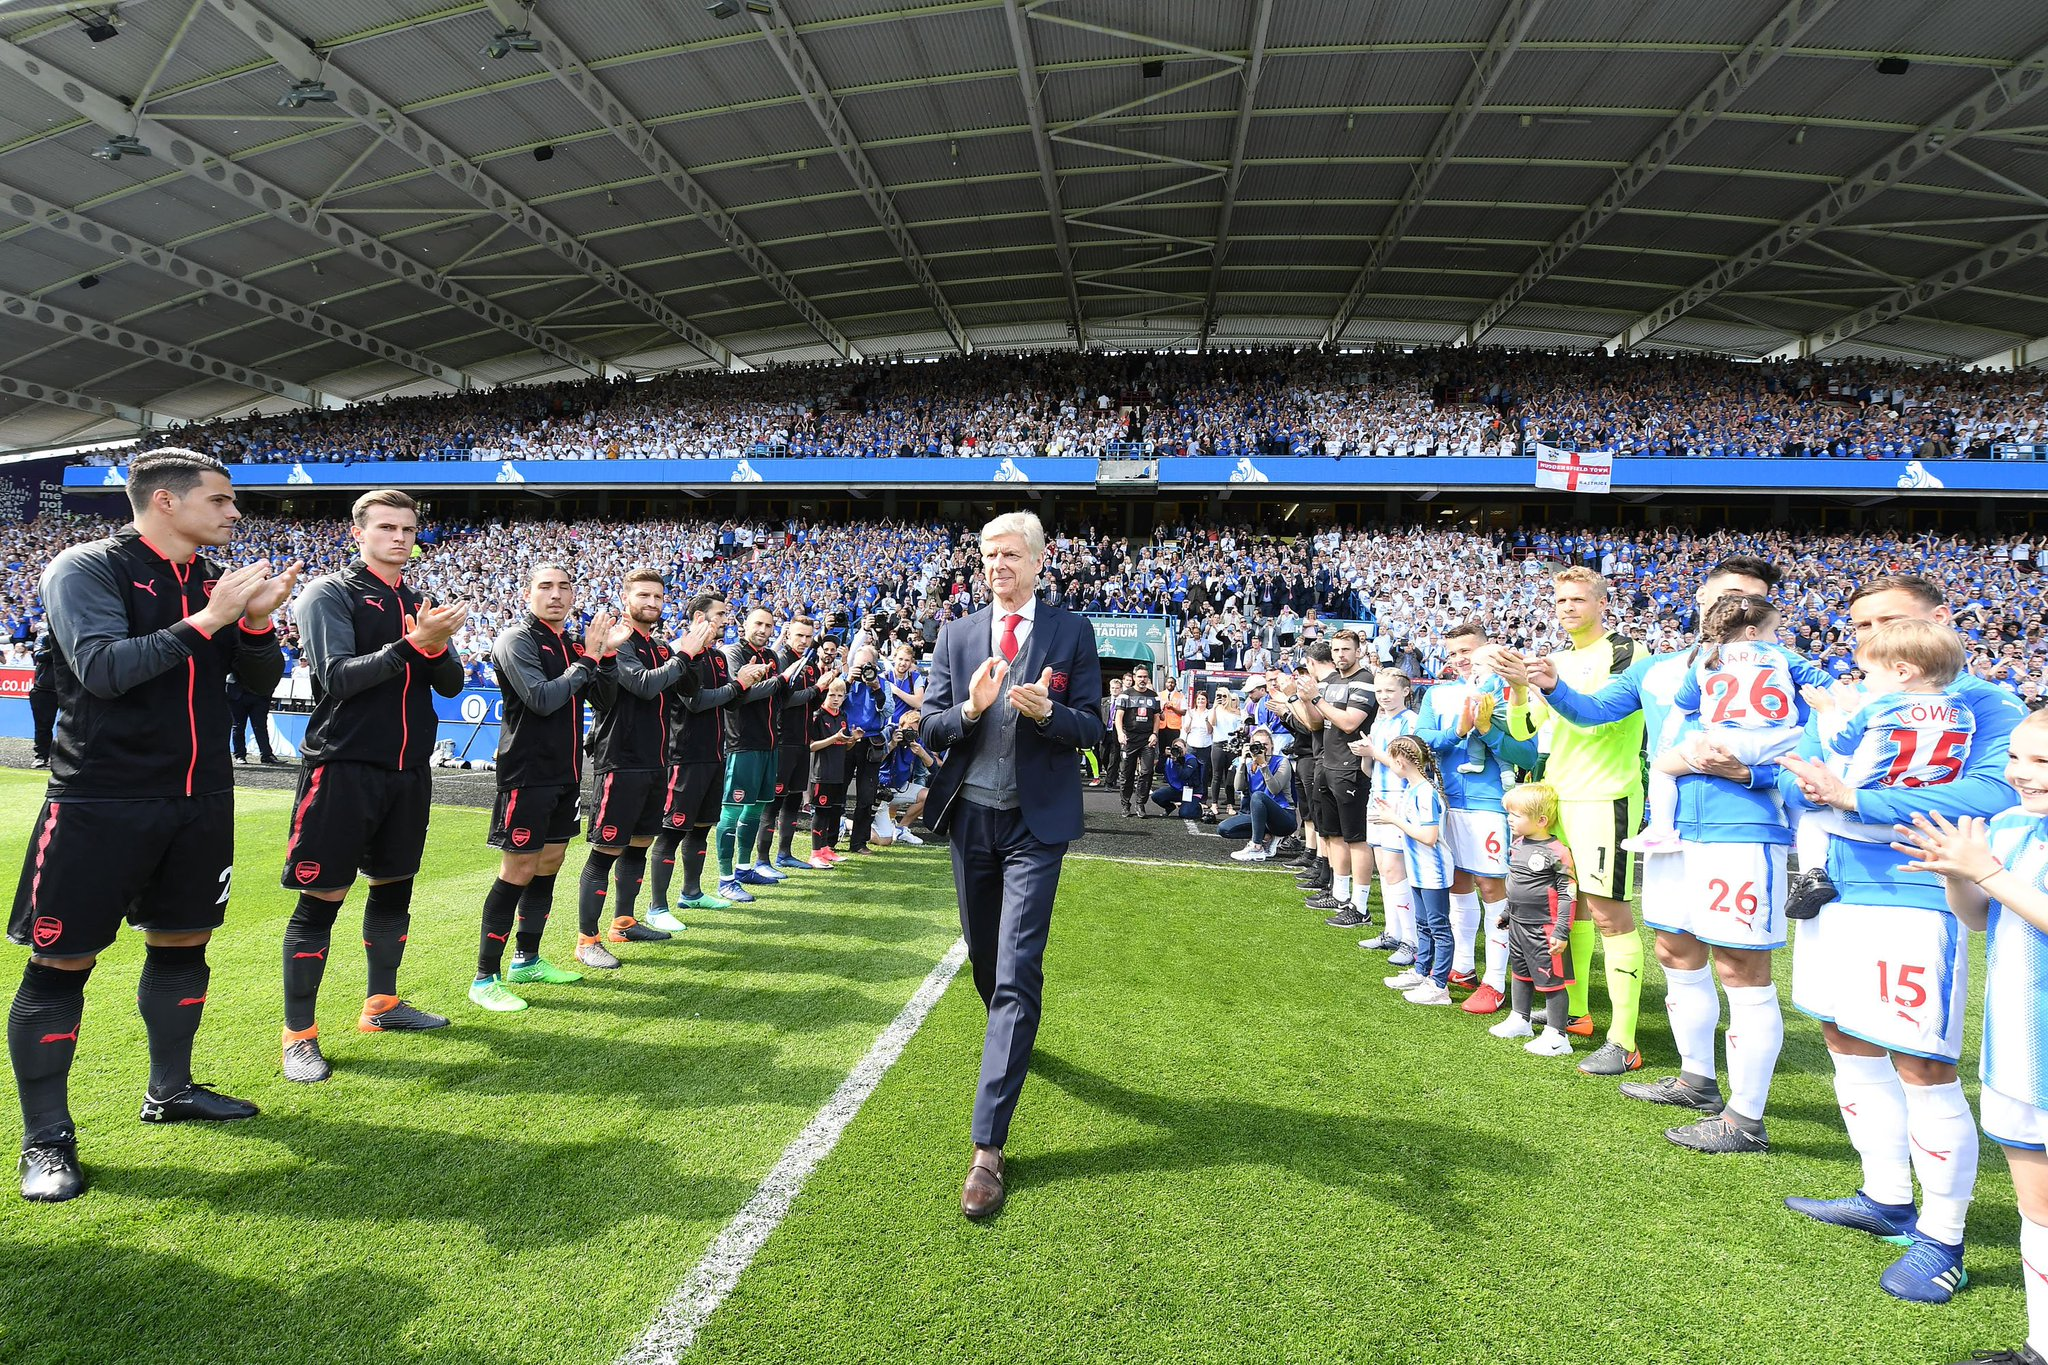 A few pictures of Arsene Wenger on his last match as Arsenal manager. #afc #arsenal #MerciArsène https://t.co/2g1PSnpYVg